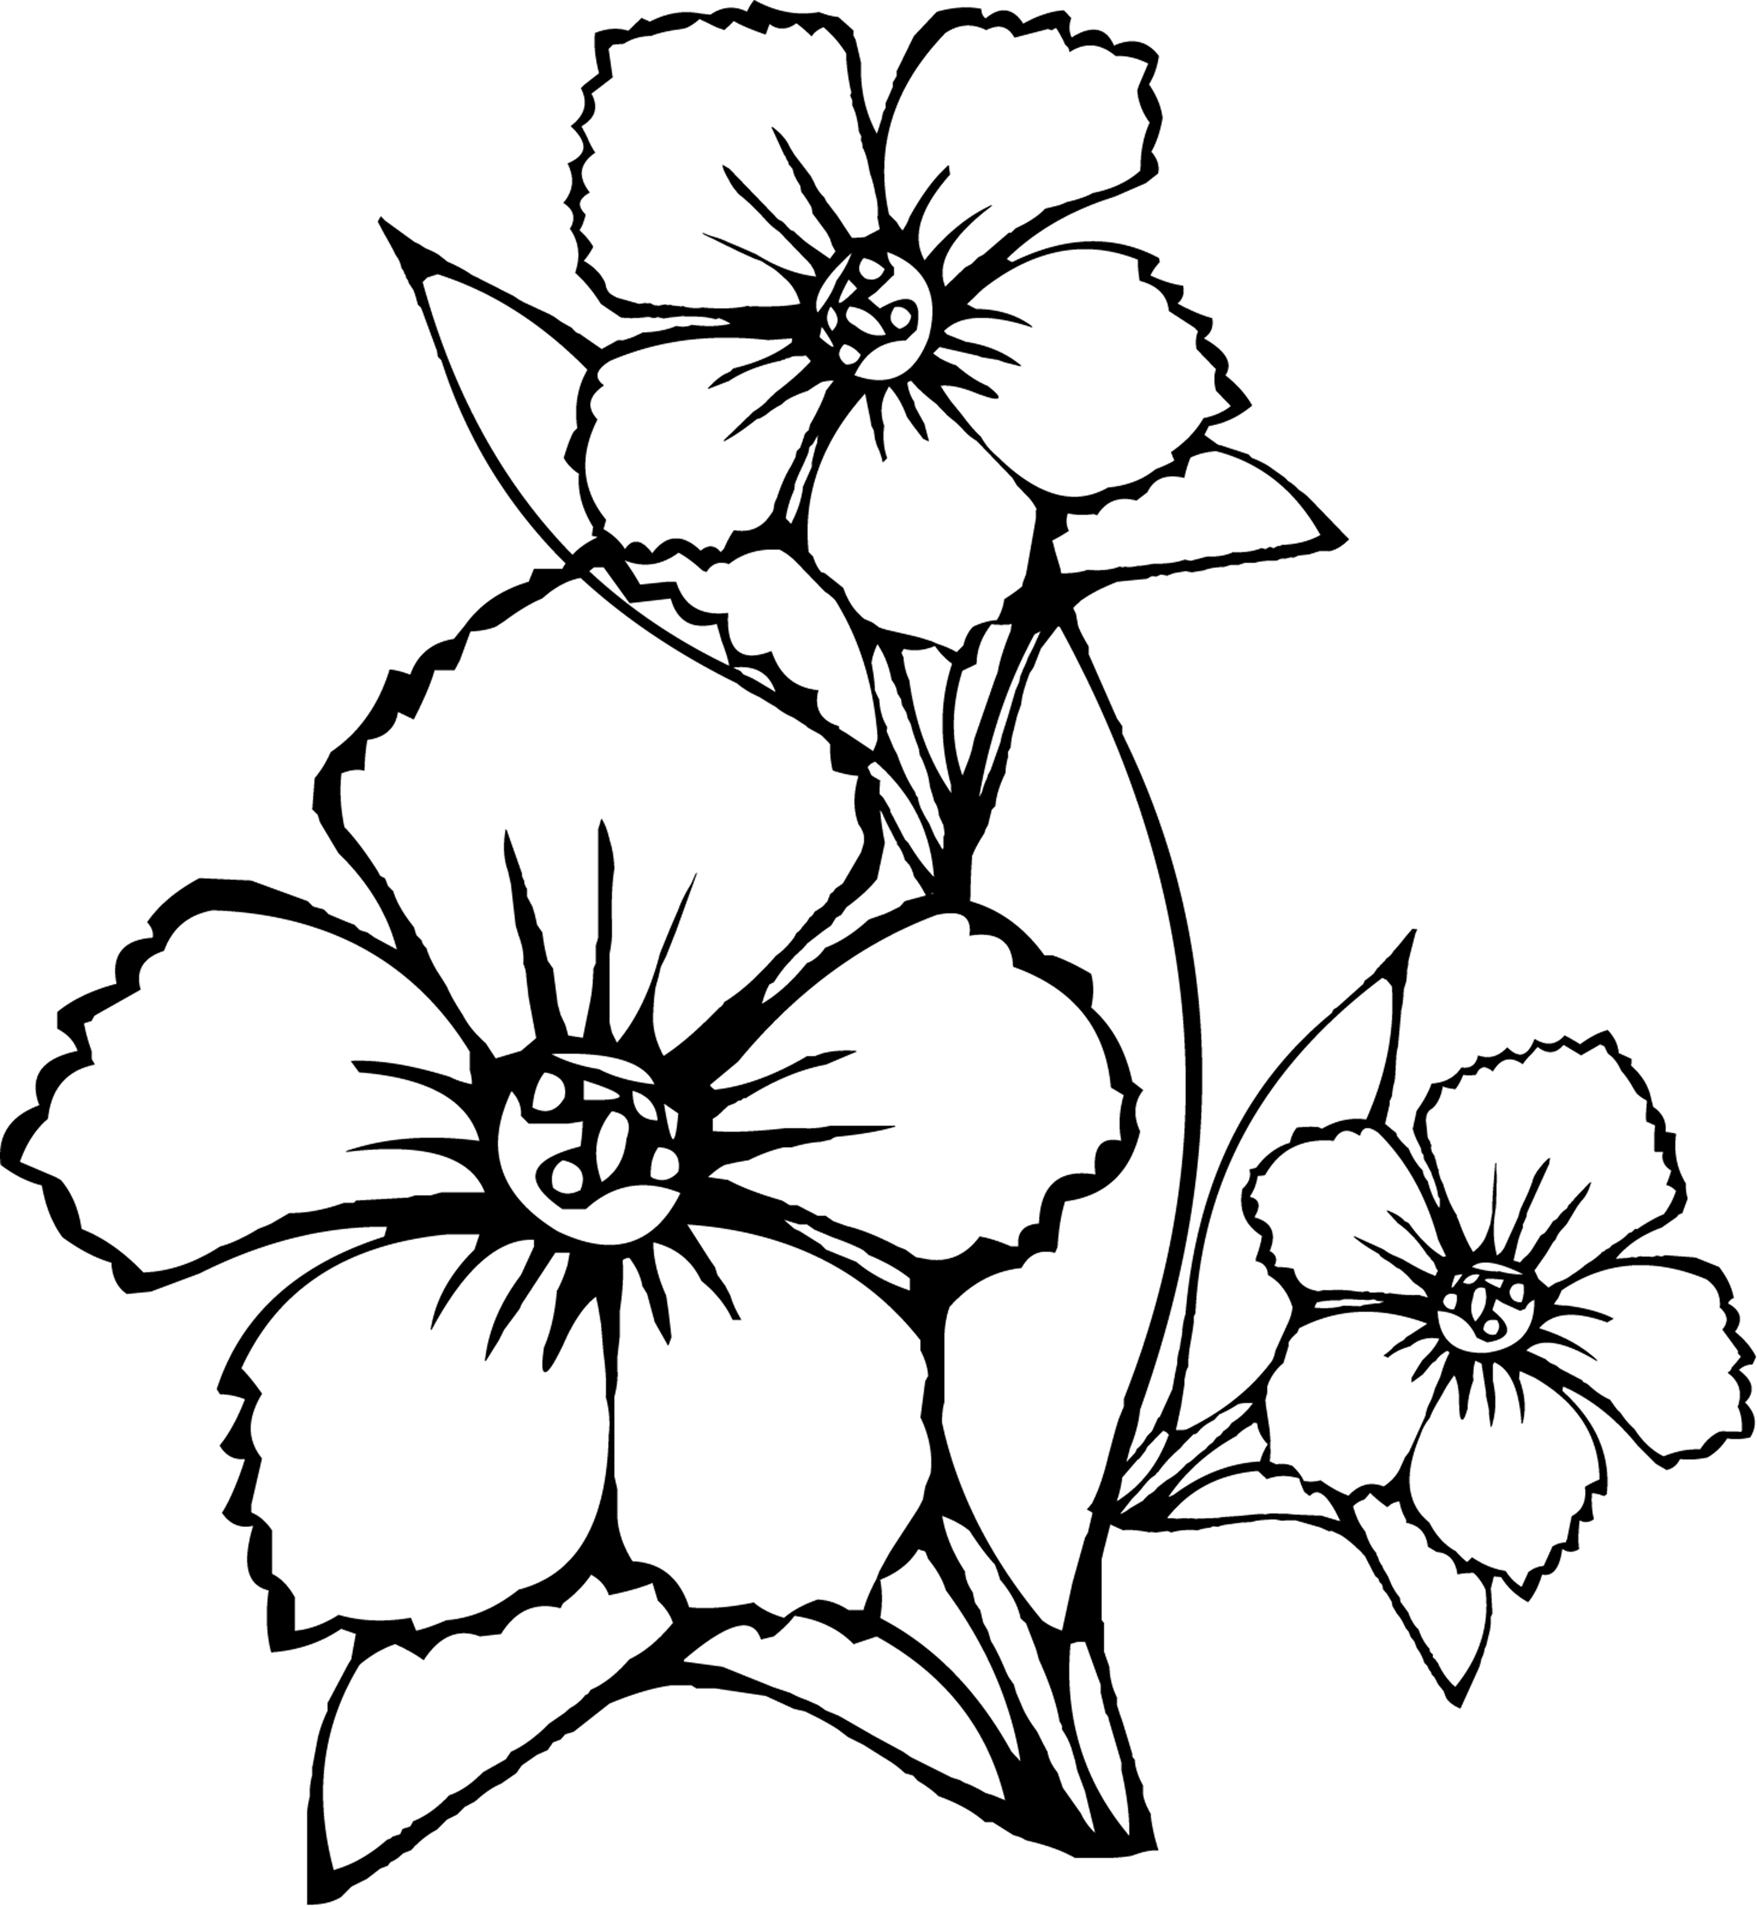 flower coloring pages printable free printable flower coloring pages for kids best coloring flower printable pages